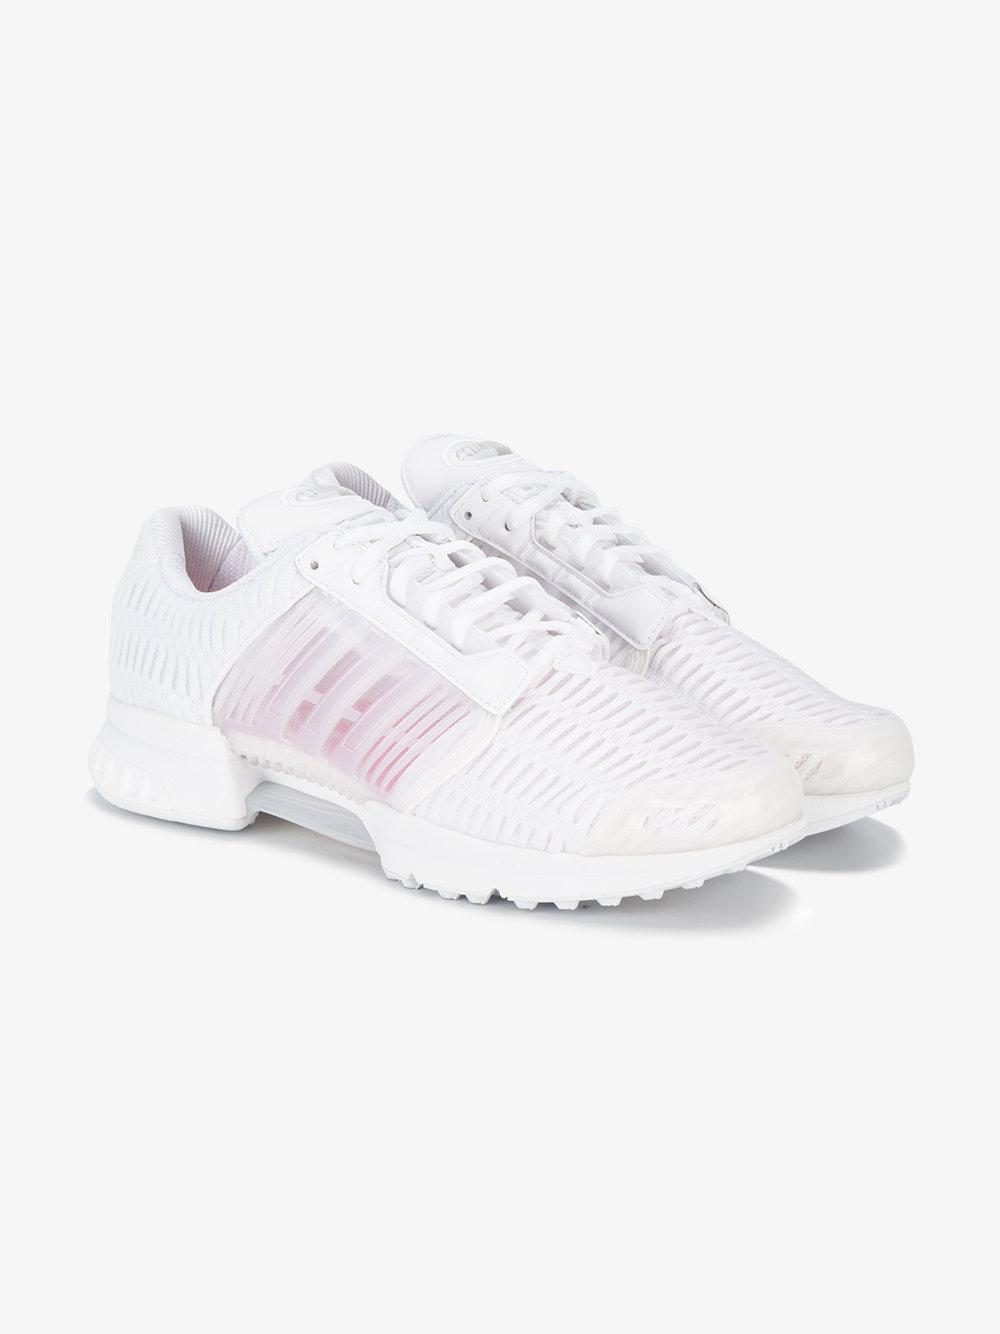 san francisco 3a5ad c1eb3 Lyst - Adidas Climacool 1 Trainers in White for Men